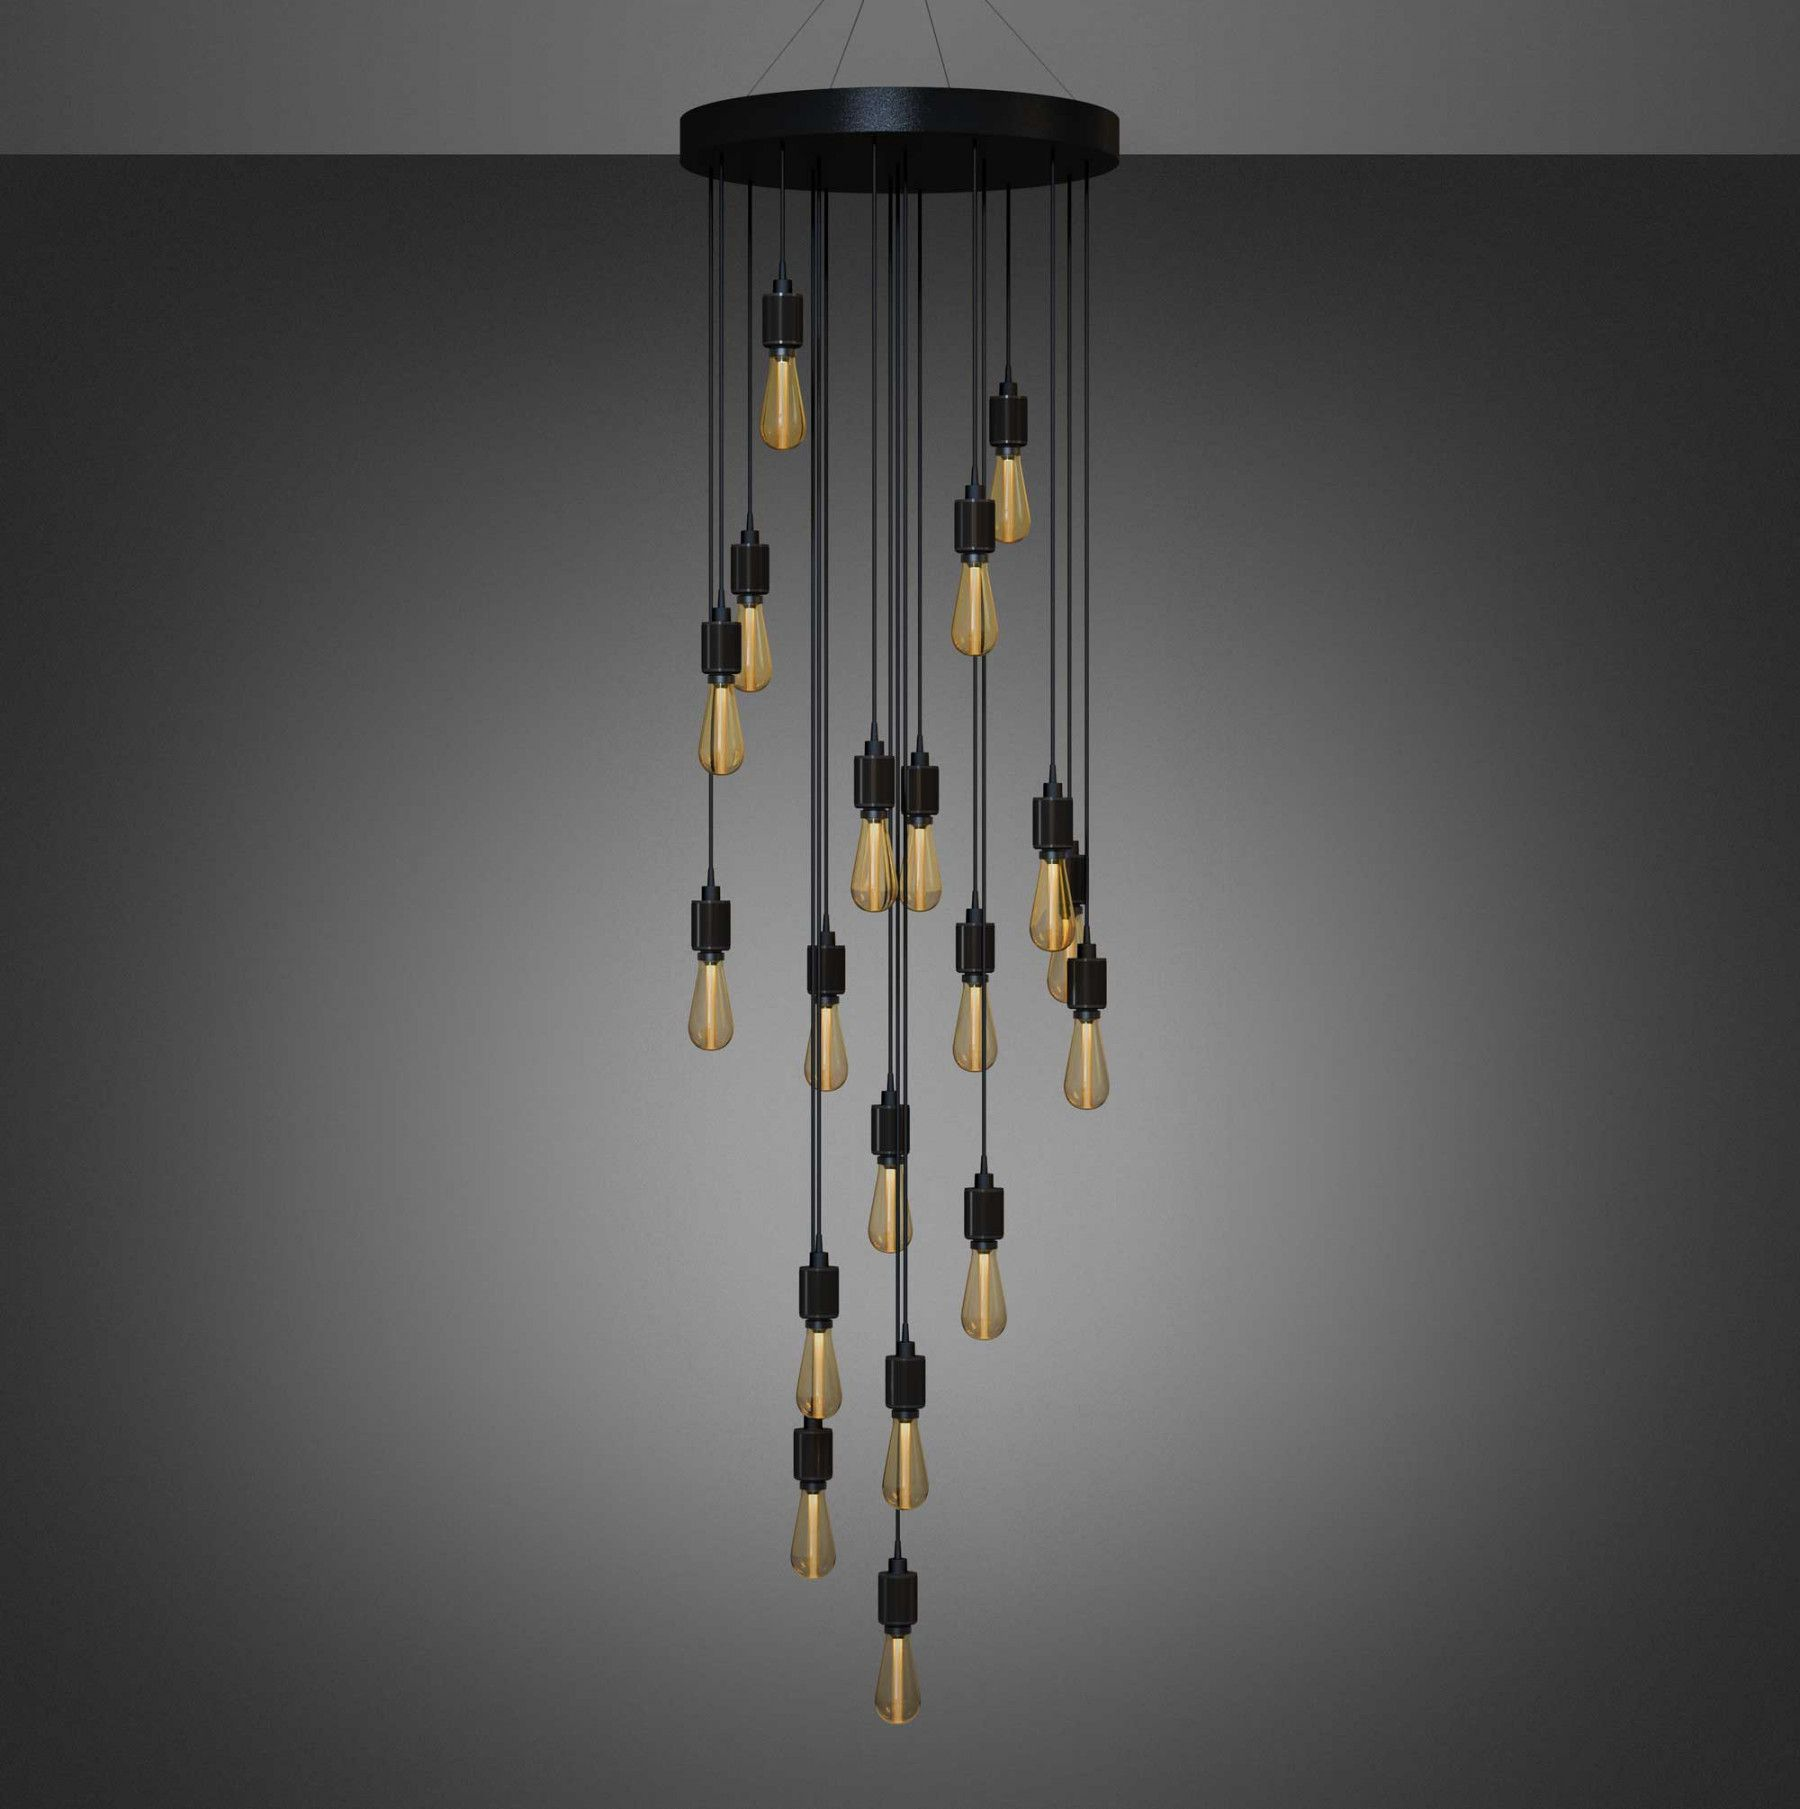 Led heavy metal chandelier bespoke chandeliers and heavy metal a bespoke chandelier with either 19 or 31 light pendants made from solid metal built arubaitofo Images